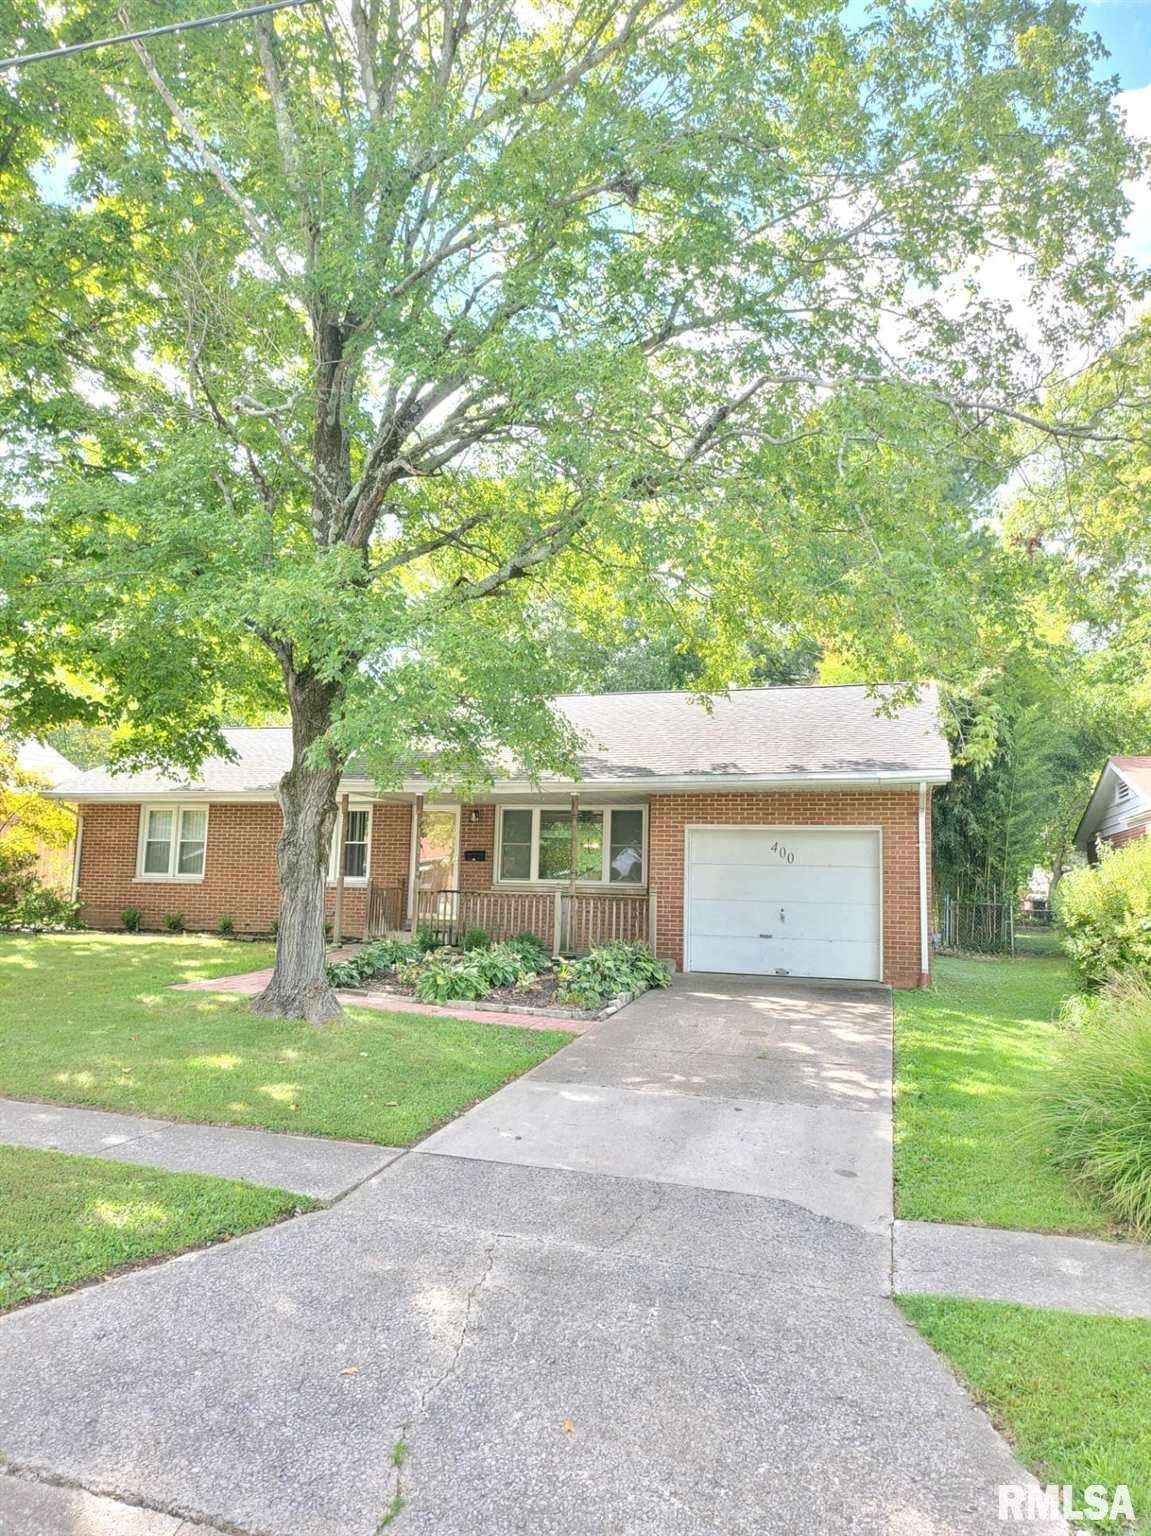 400 S ORCHARD, Carbondale, IL 62901 - MLS#: EB441433